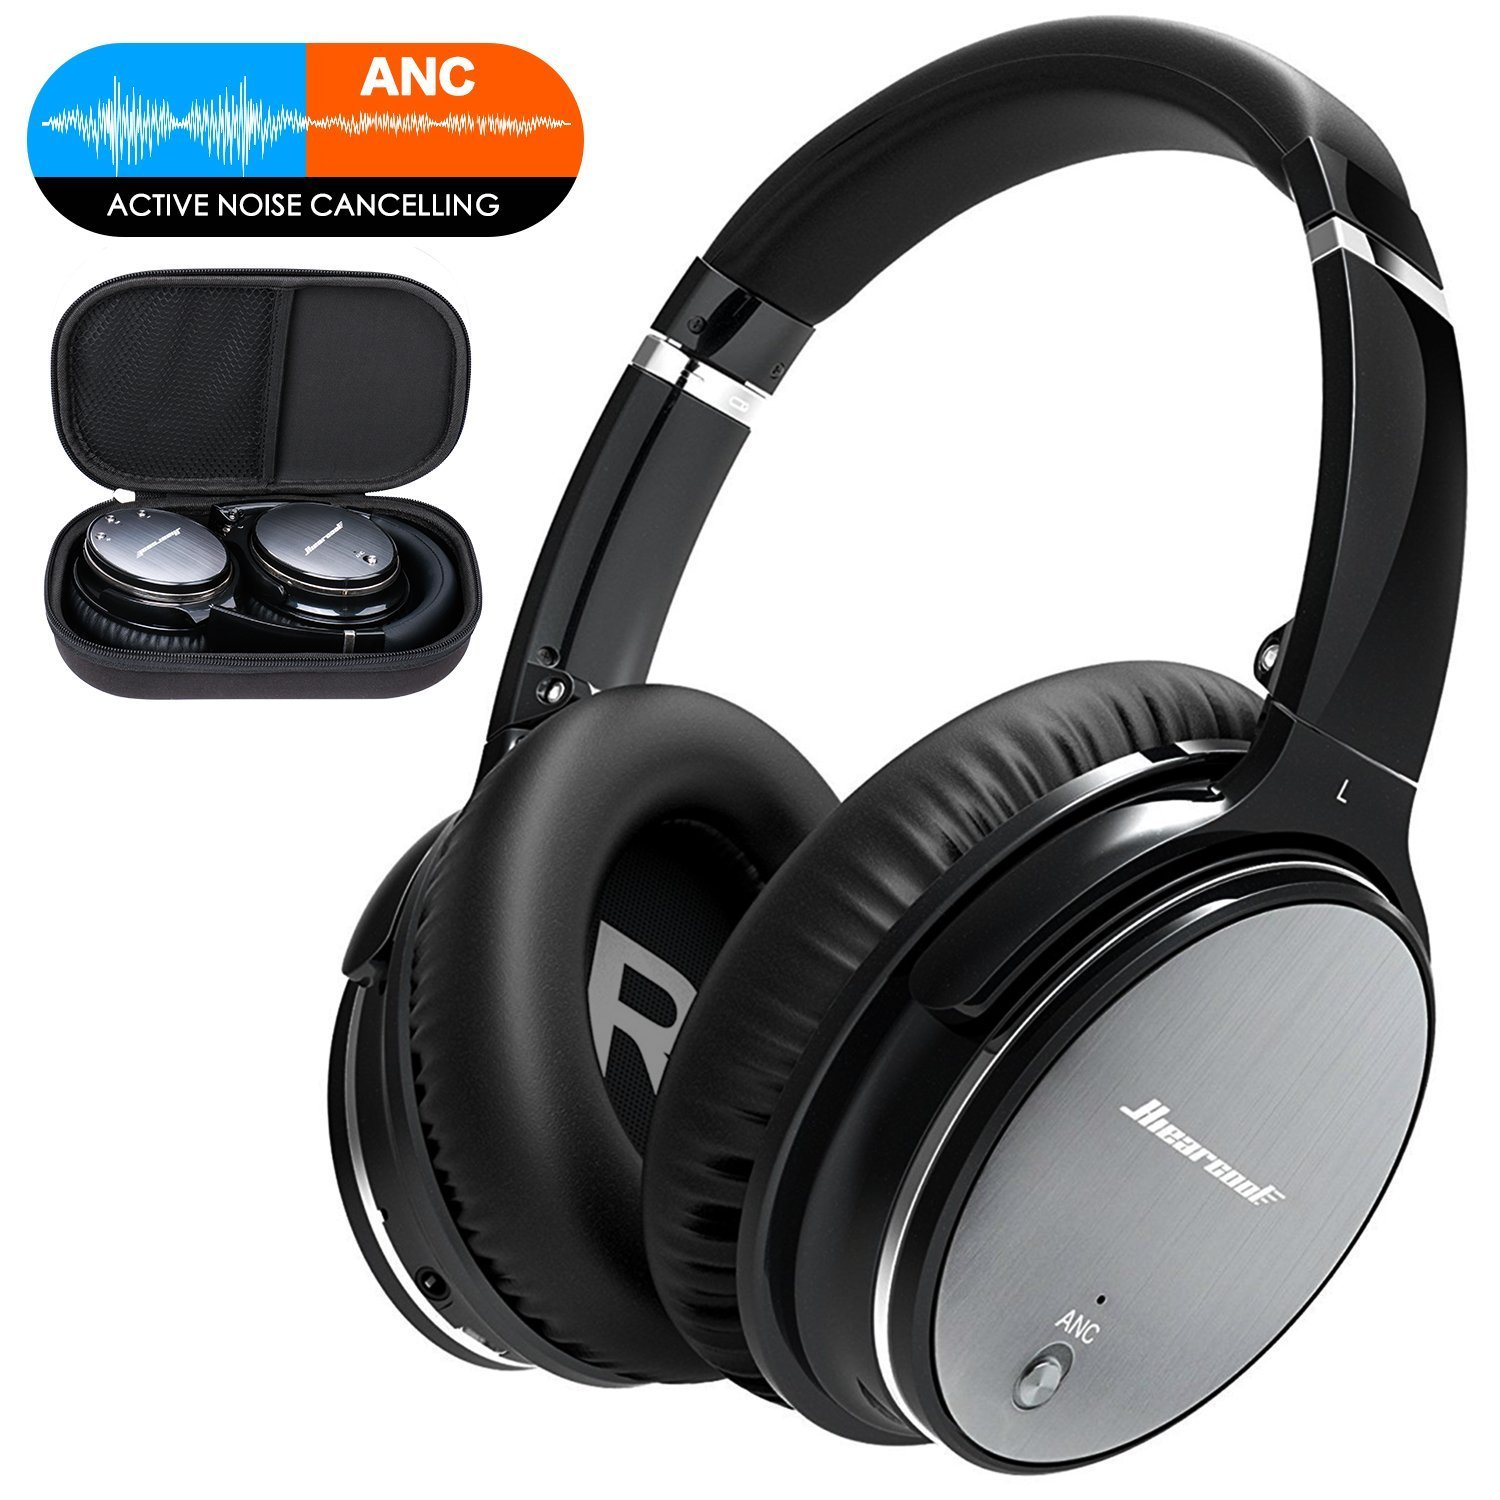 c1b2ae898b1 FITFORT CVC 6.0 Active Noise Cancelling Bluetooth Headphones - Over Ear  Headset with HiFi Stereo Sound